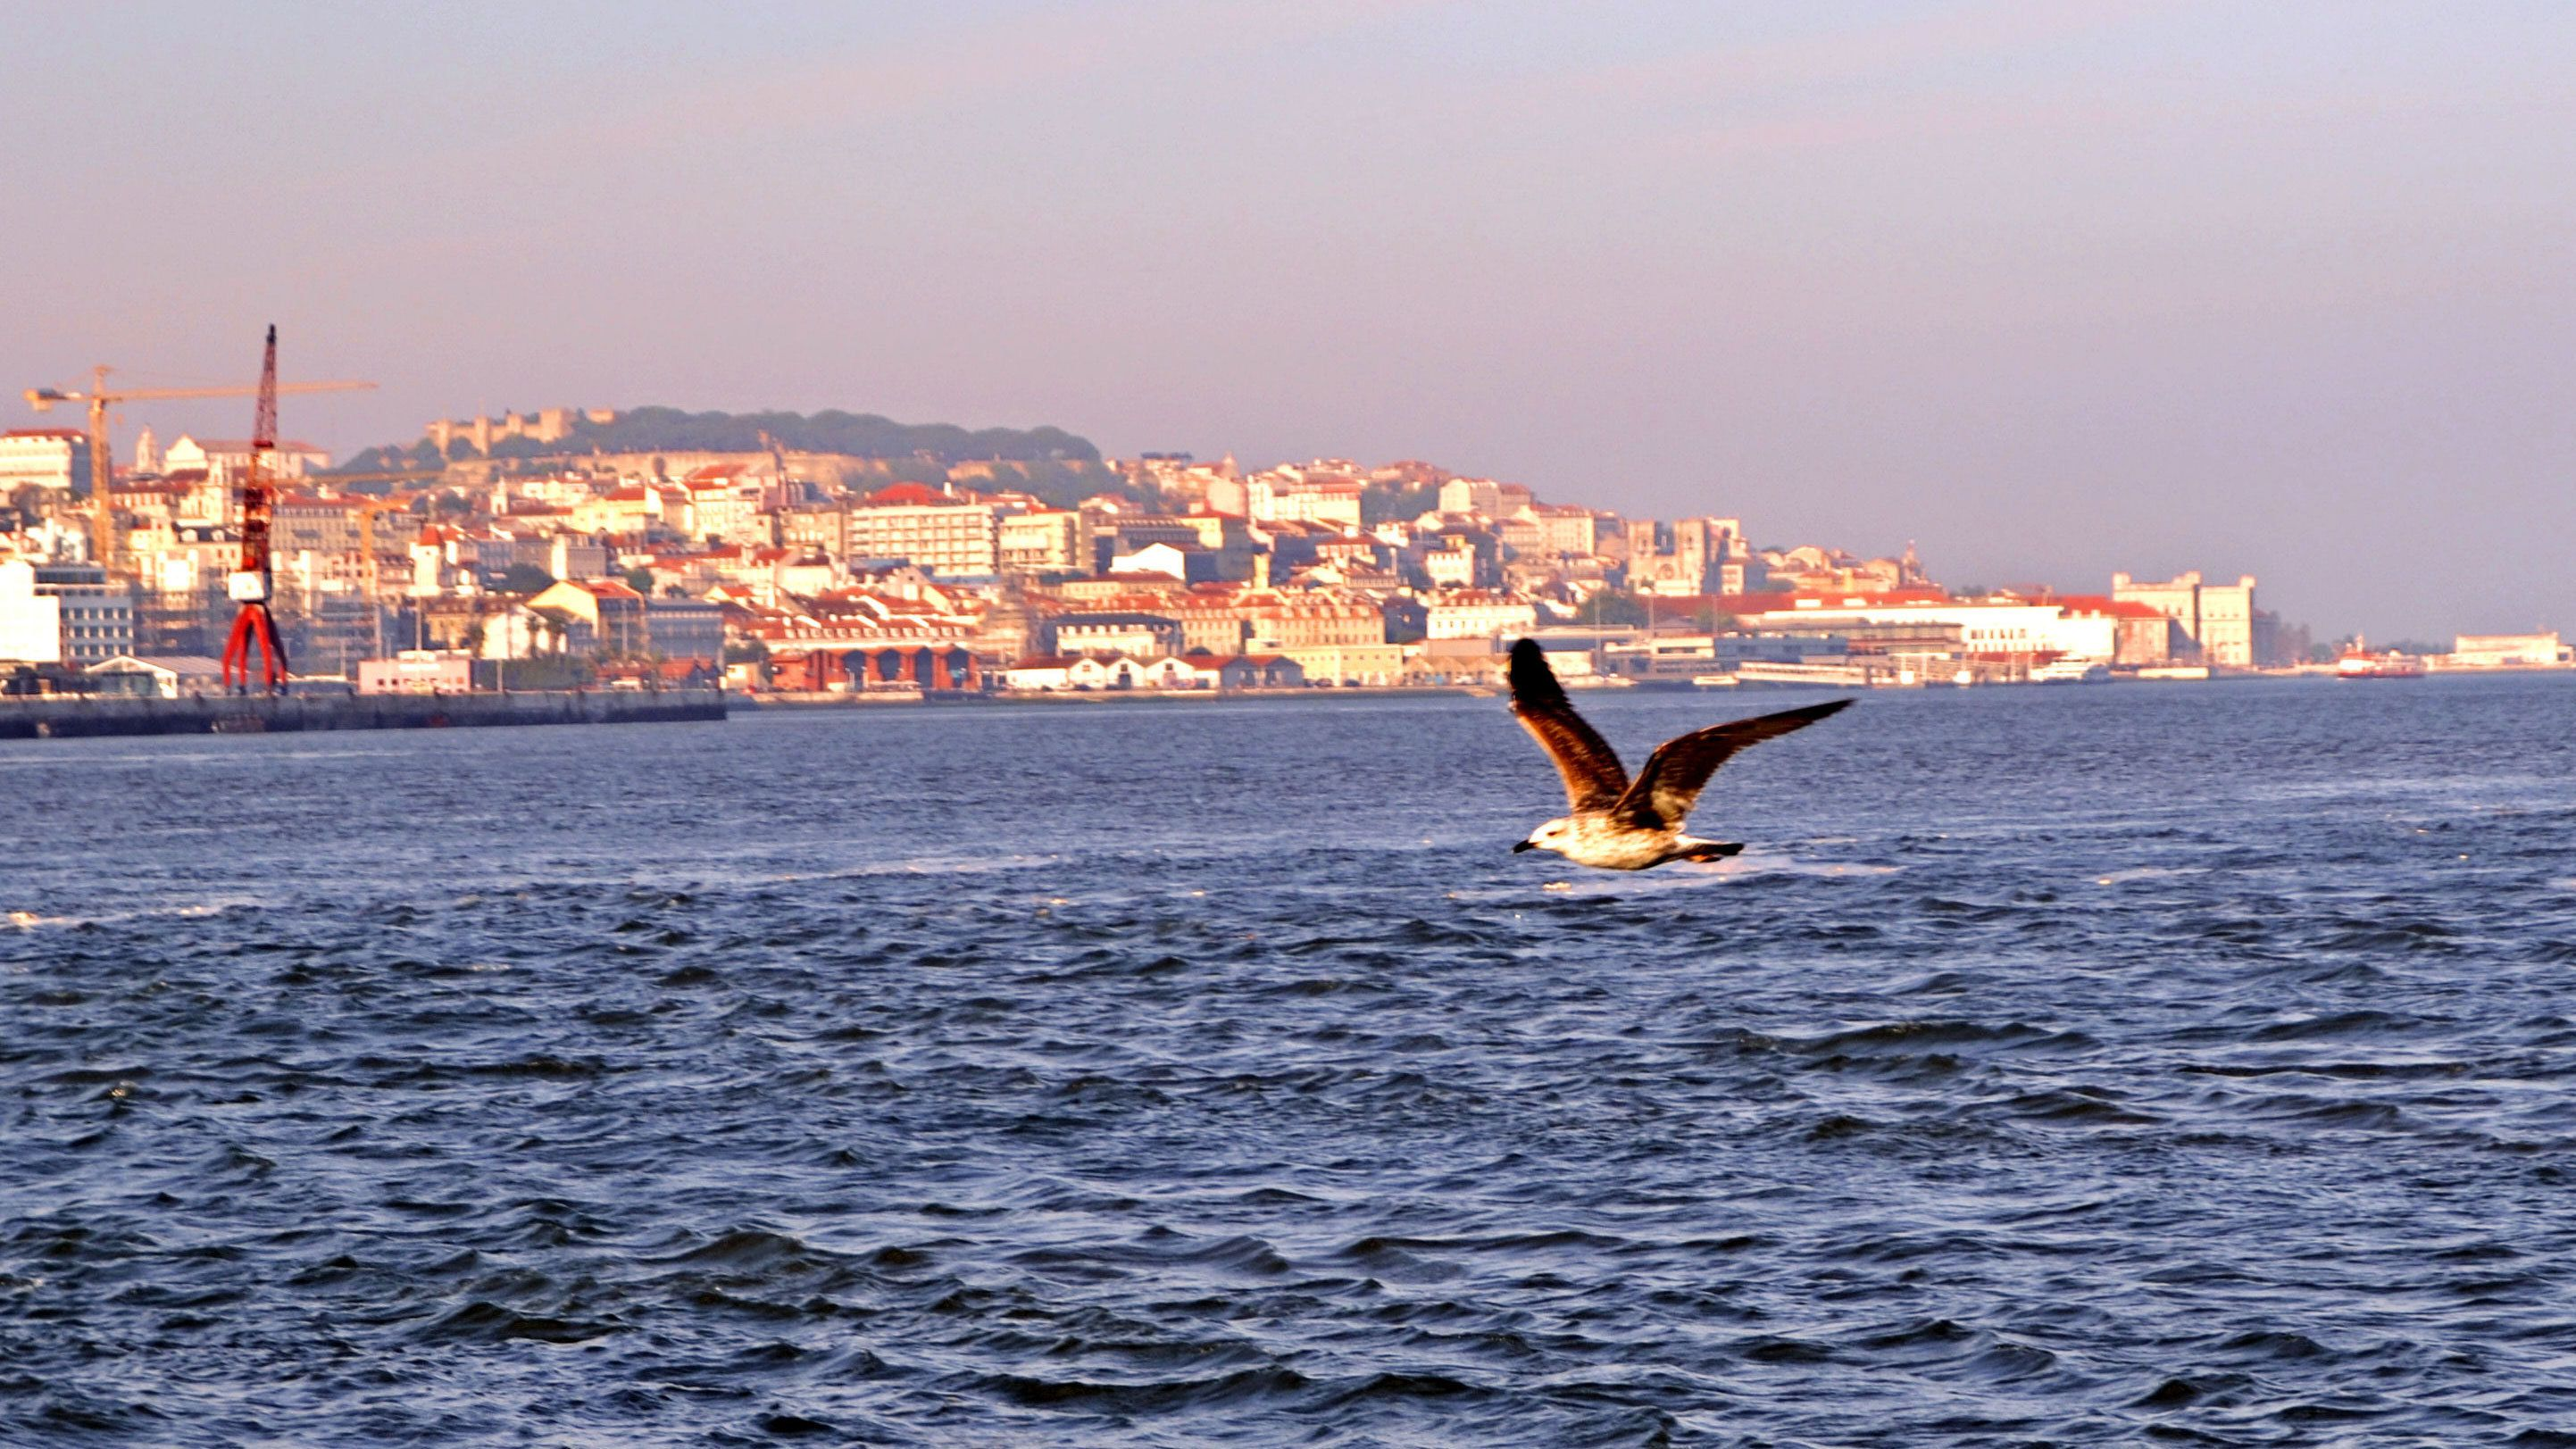 Seagull flying over the water with the city of Lisbon in the background